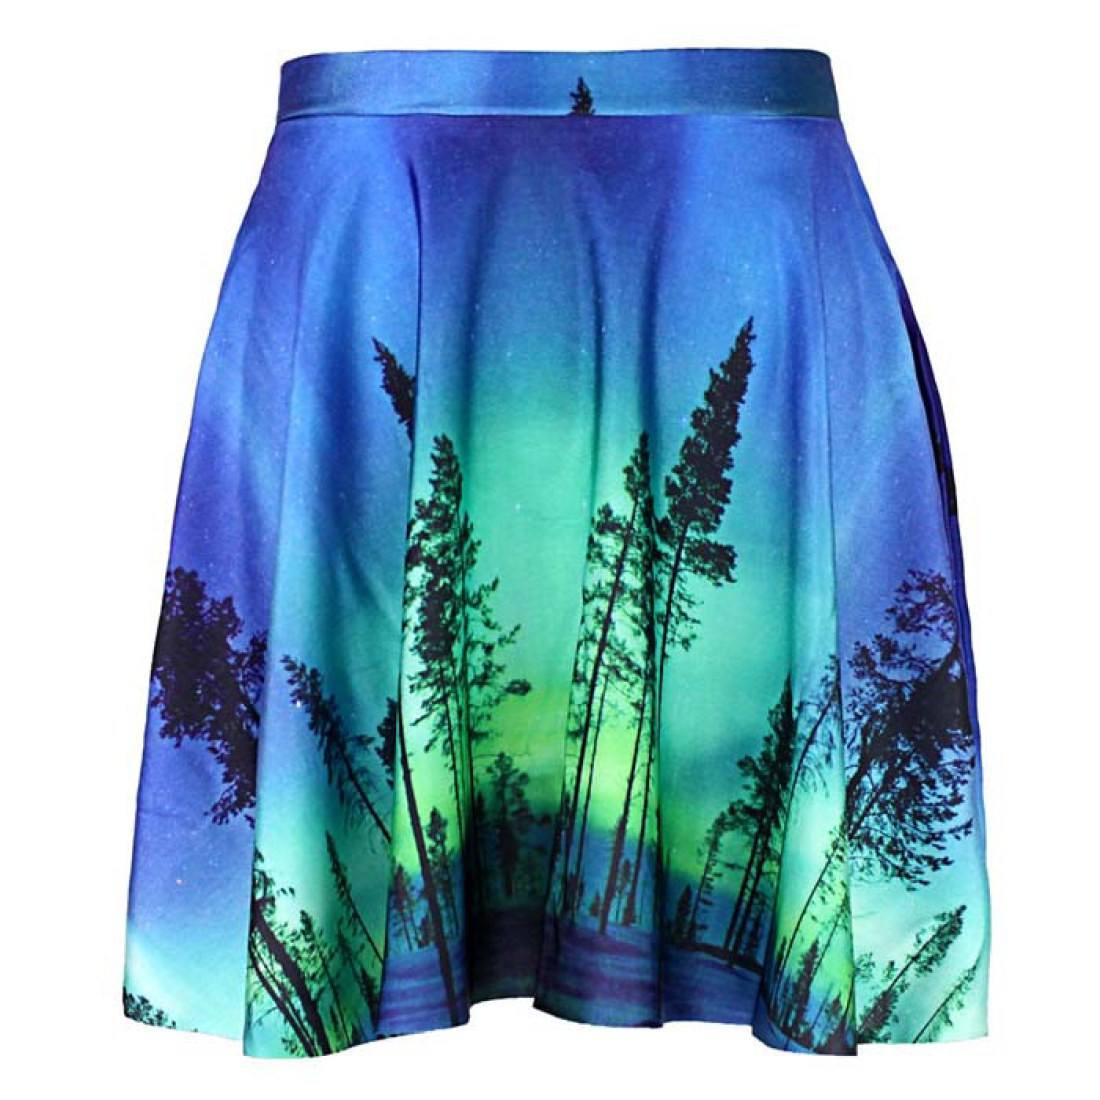 Aurora Borealis Tree Silhouette Print Circle Skirt with Elastic Waist